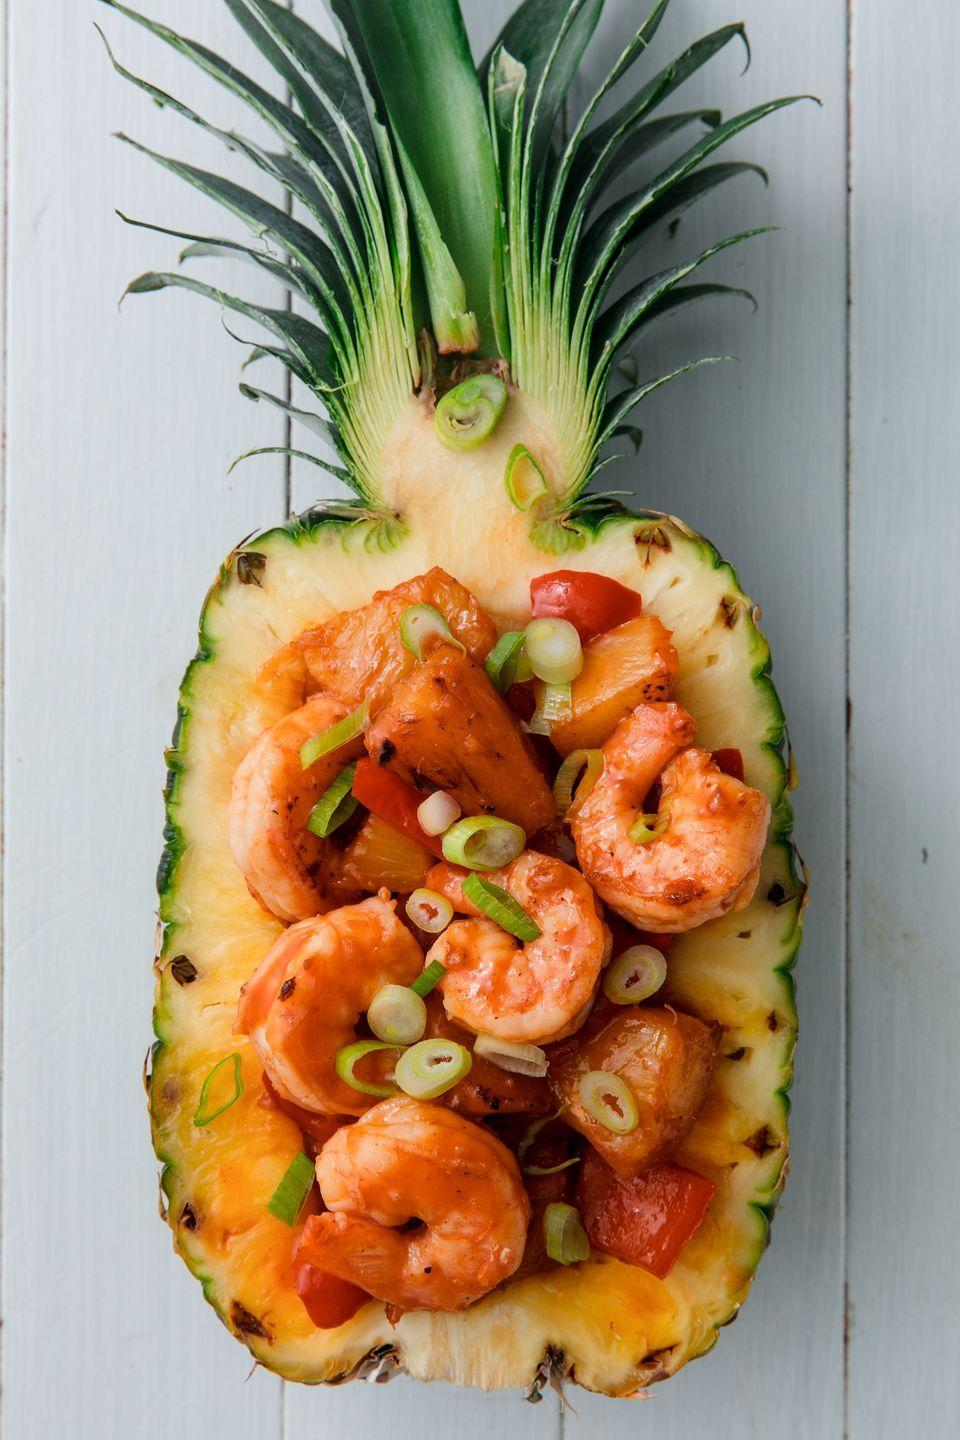 """<p>Pineapple boat optional, but recommended. </p><p>Get the recipe from <a href=""""https://www.delish.com/cooking/recipe-ideas/a22024504/best-pineapple-shrimp-recipe/"""" rel=""""nofollow noopener"""" target=""""_blank"""" data-ylk=""""slk:Delish."""" class=""""link rapid-noclick-resp"""">Delish.</a> </p>"""